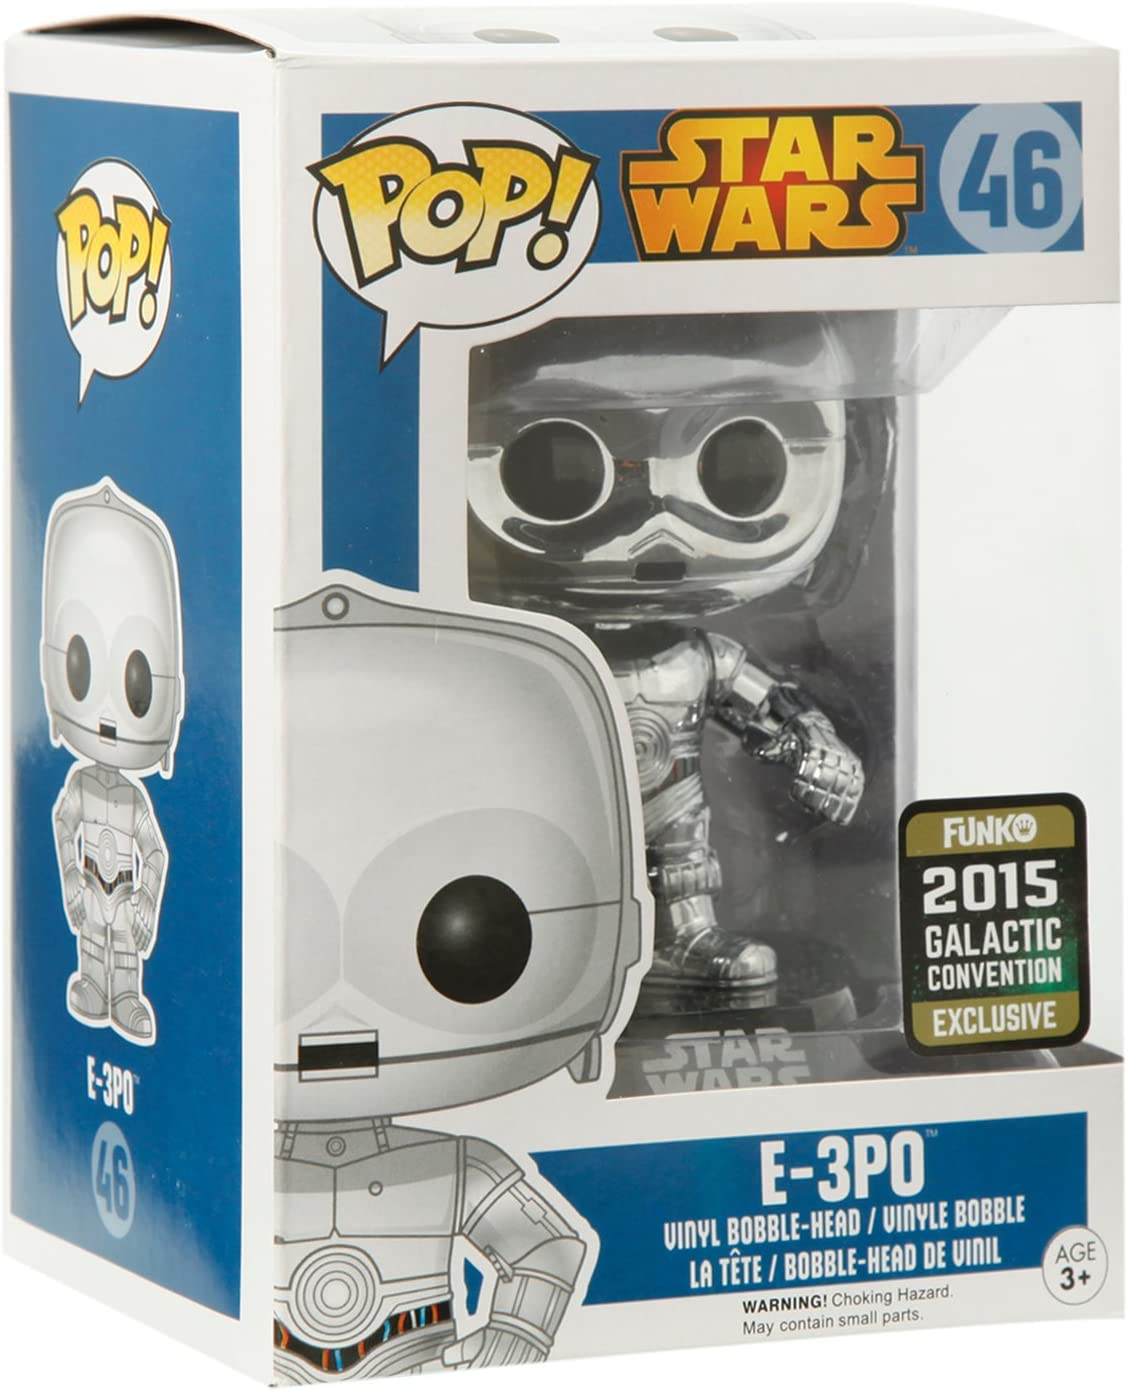 Funko Pop! Star Wars E-3P0 CHROME 2015 Galactic Convention Exclusive